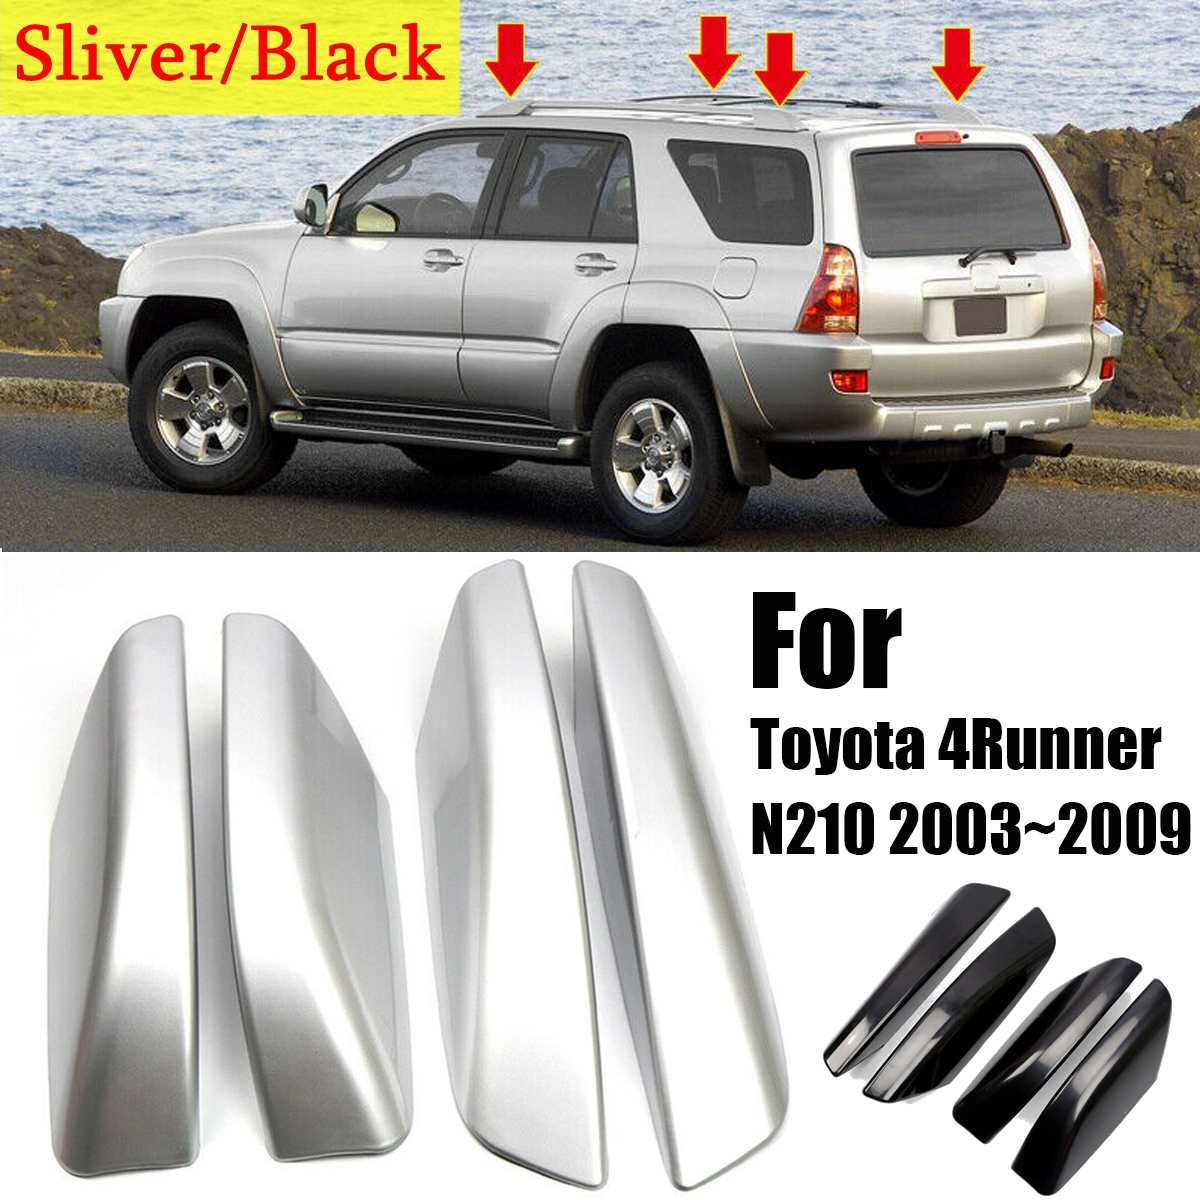 NEW 4PCS/Set Glossy Black/Silver ABS Plastic Roof Rack Bar Rail End Replacement Cover Shell For Toyota 4Runner N210 2003~2009 image